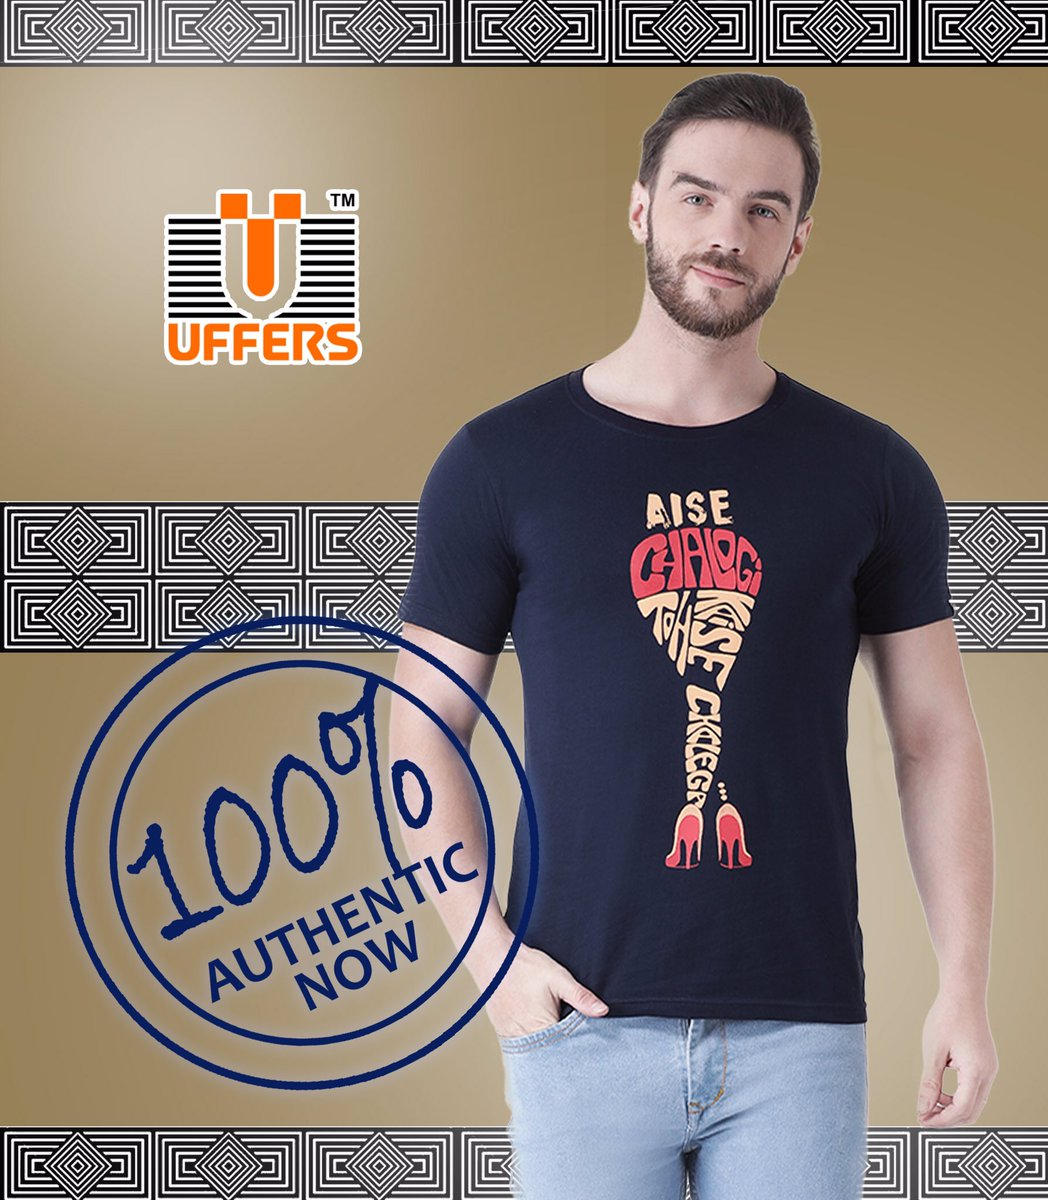 """'When Be Negative is The Only Option Left'.. Thus, """"Aise Chalogi Toh Kaise Chalega.."""" Check This Funny #LifeQuotes T-Shirt Only on #UFFERS.. #MensFashion #FashionAddict #StyleofTheDay #TshirtStyle #LifeGoals #BoysSquad #ManQuotes #GoodLuck #BrainyQuotespic.twitter.com/cN2F7I7H5M"""